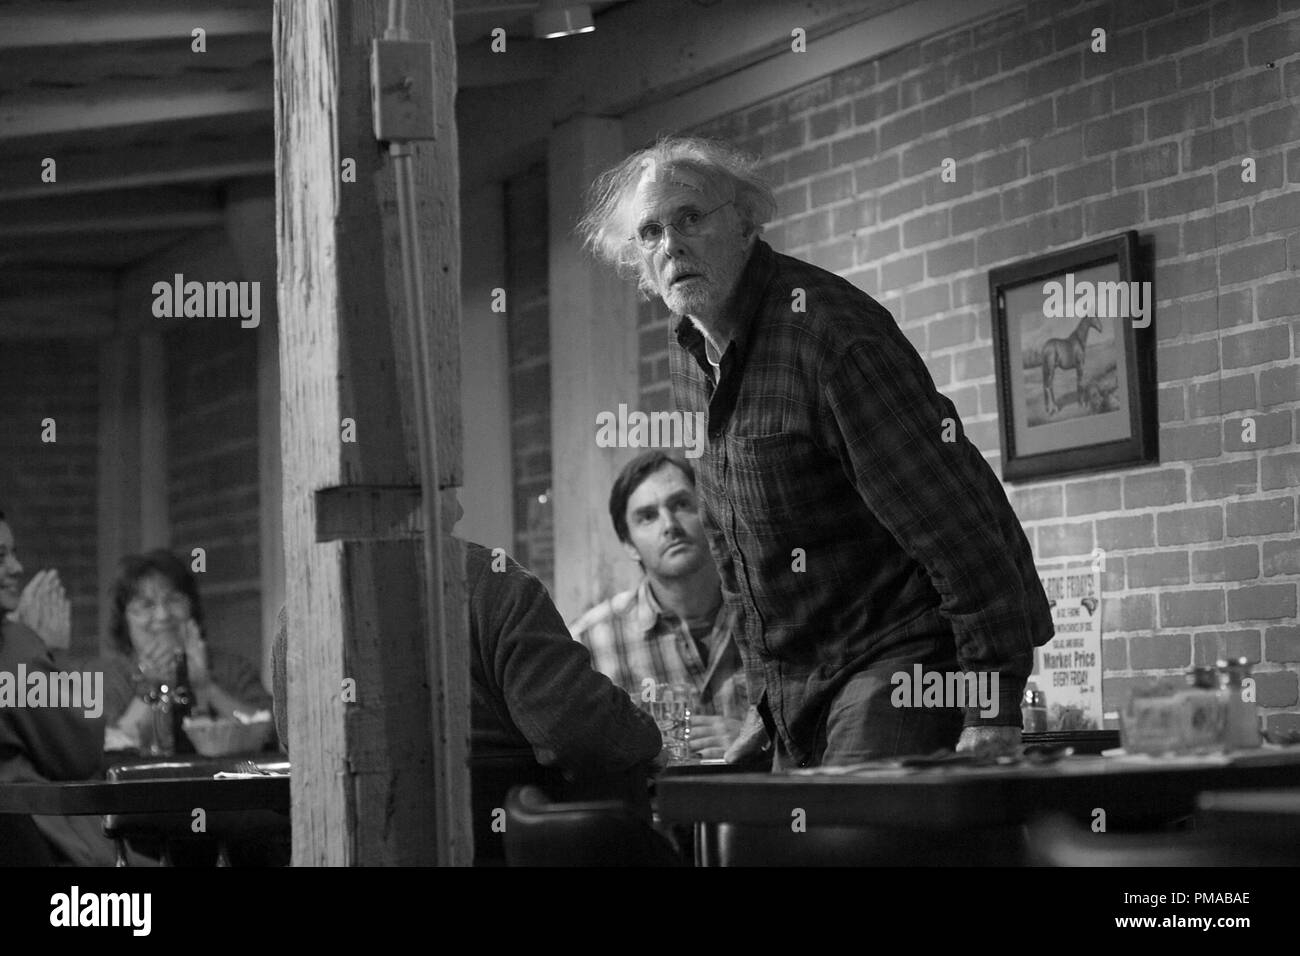 Bruce Dern (center) is Woody Grant and Will Forte (rear) is David Grant in NEBRASKA, from Paramount Vantage in association with FilmNation Entertainment, Blue Lake Media Fund and Echo Lake Entertainment. - Stock Image